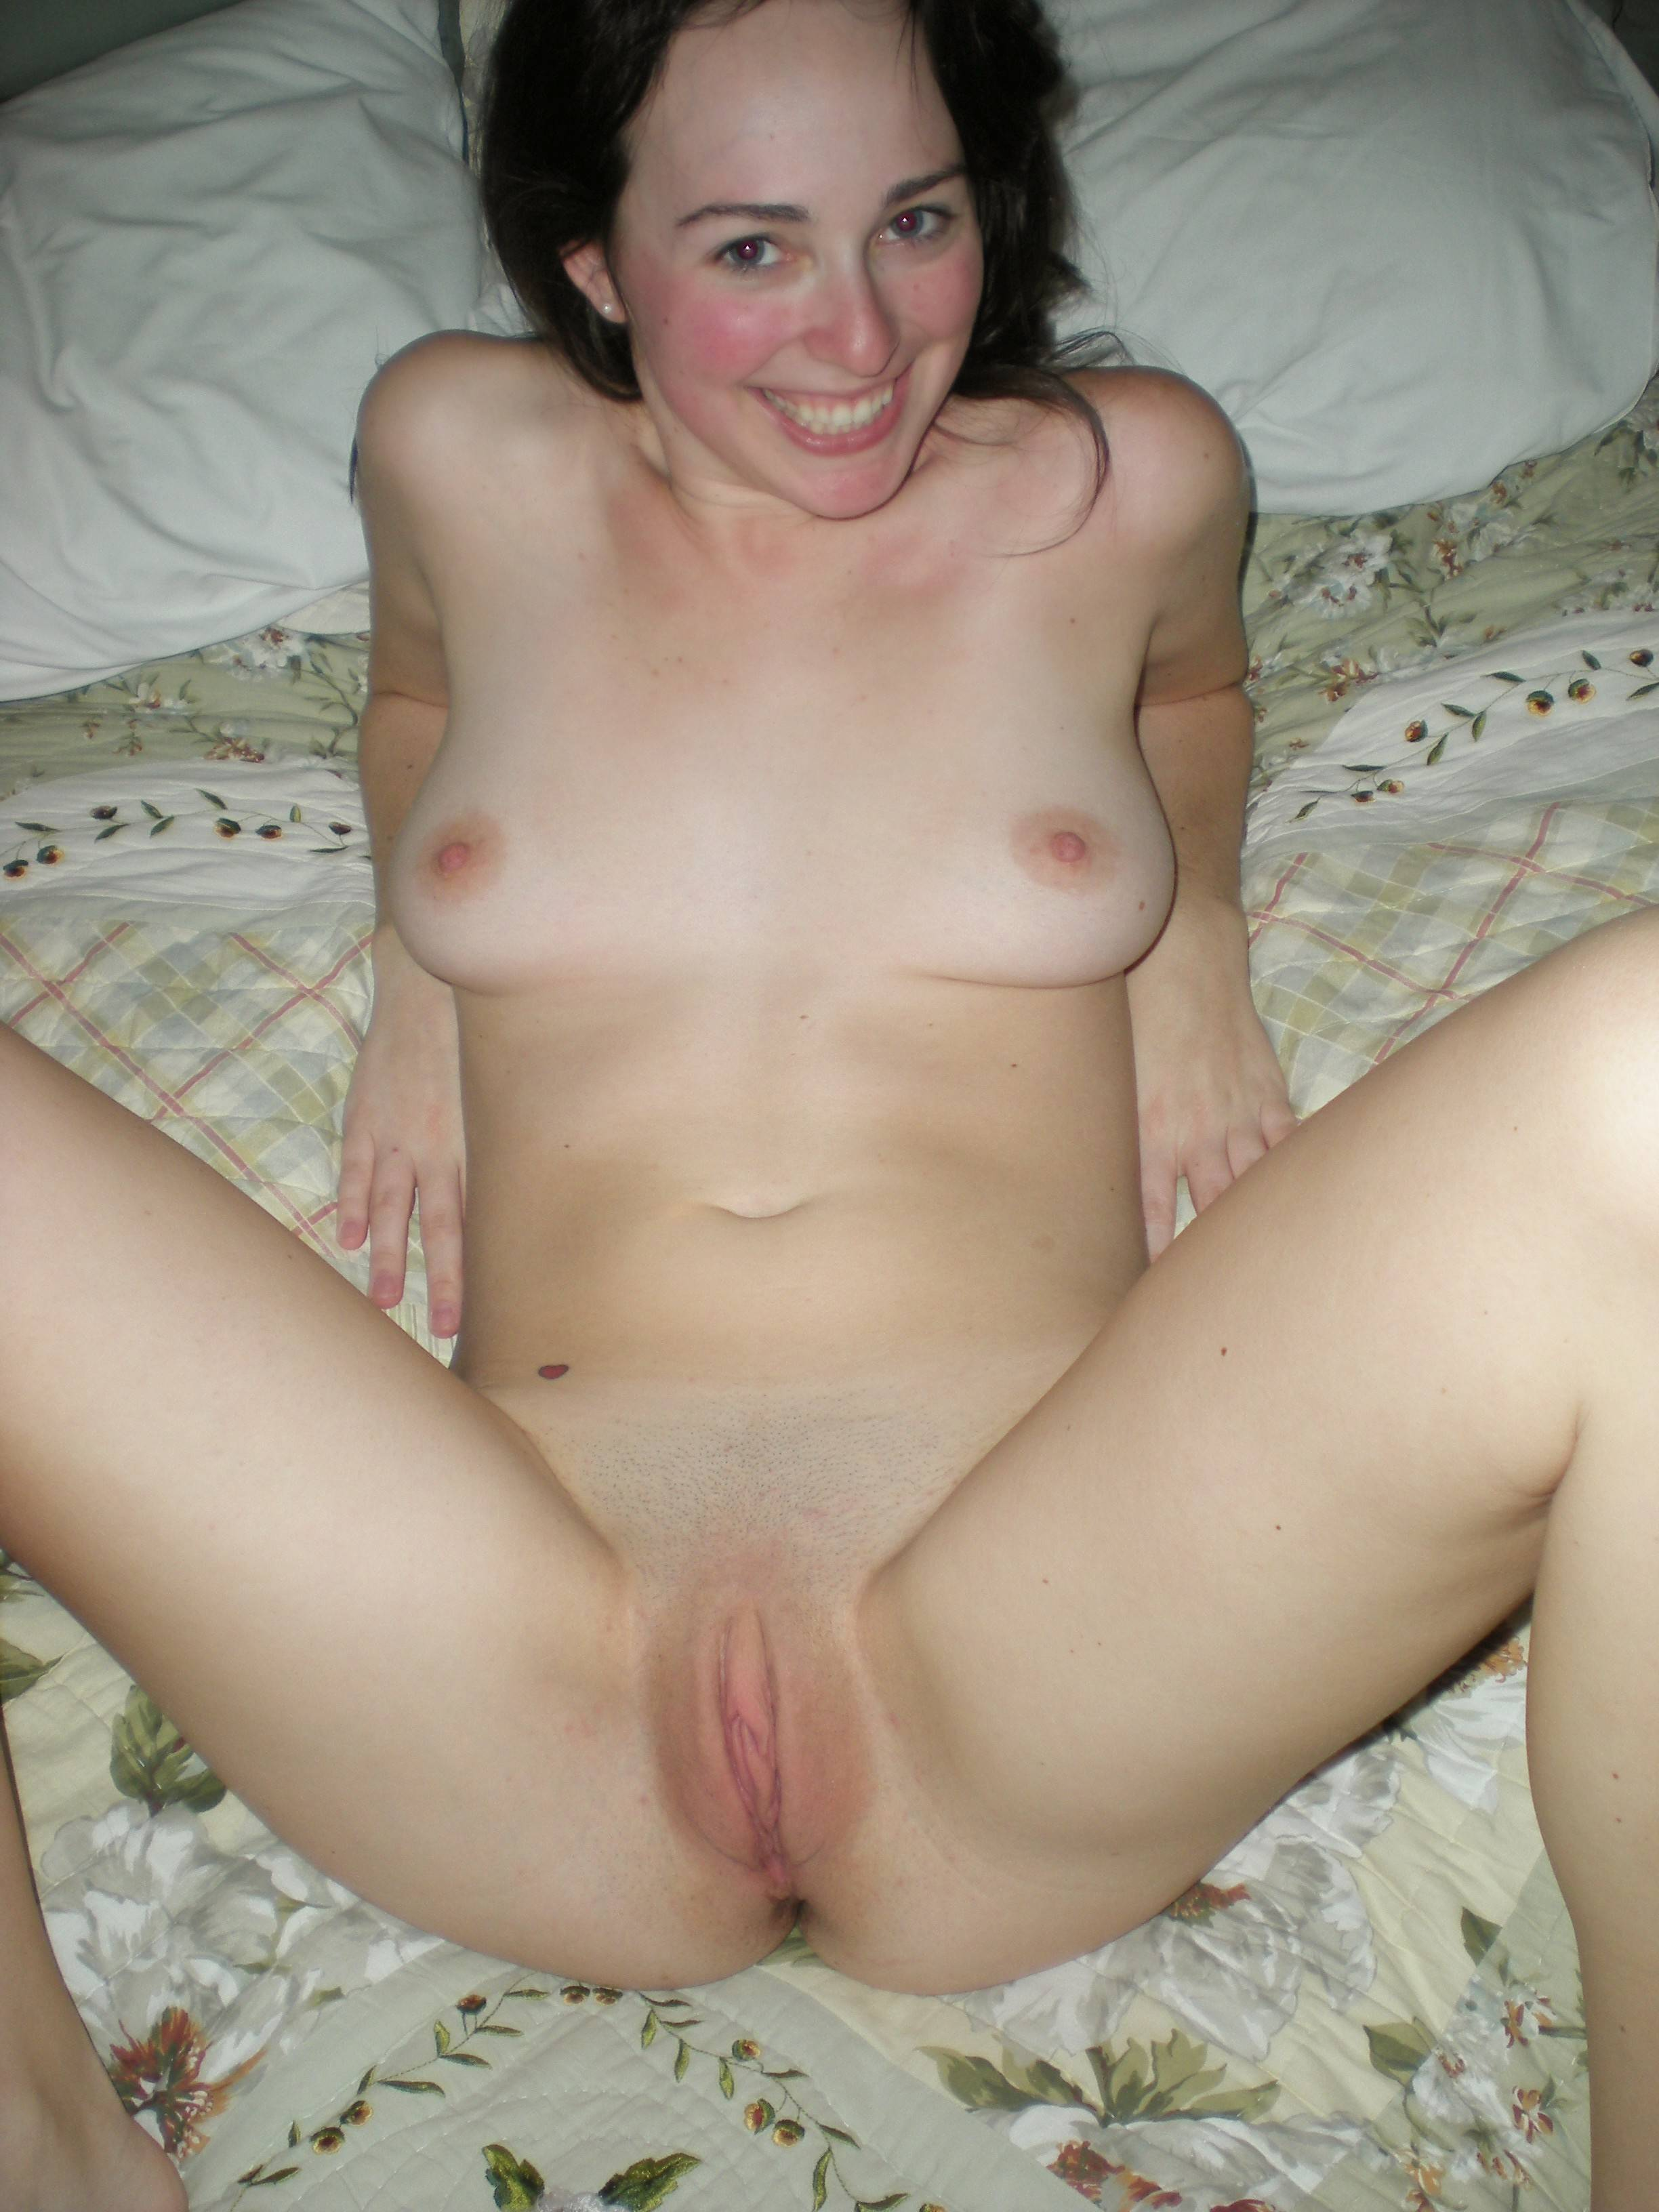 bbw milf gives nice blowjob and handjob with happy end